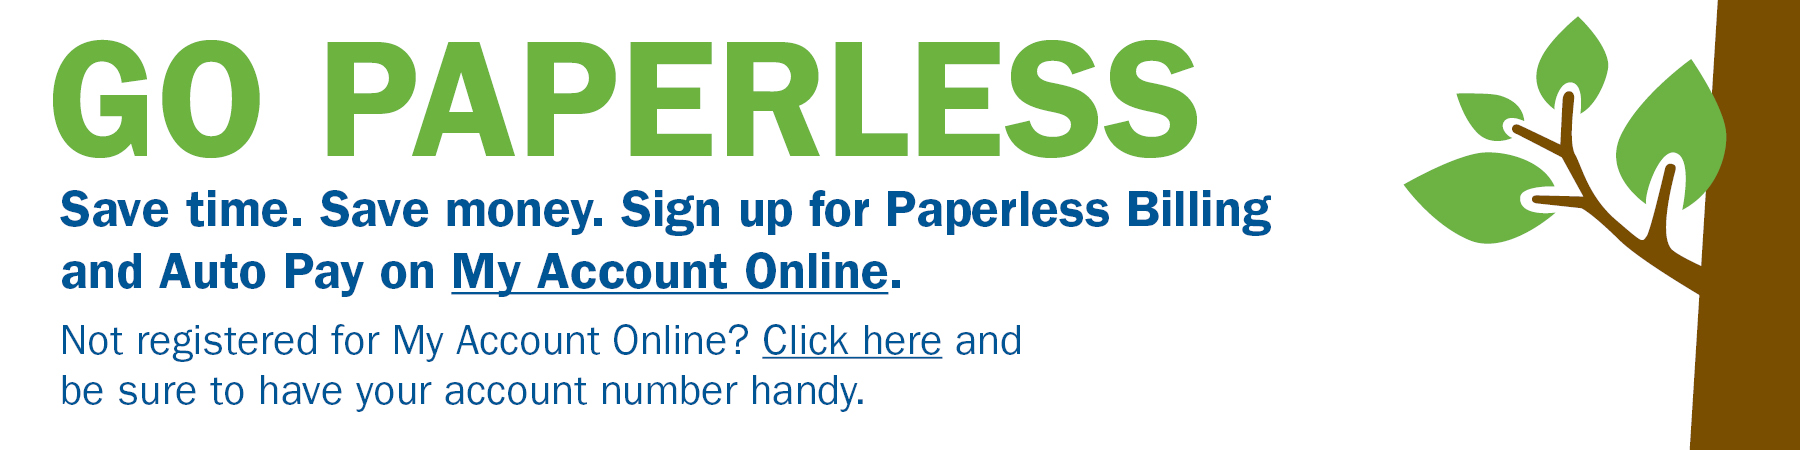 Paperless%20Billing%2011-20162